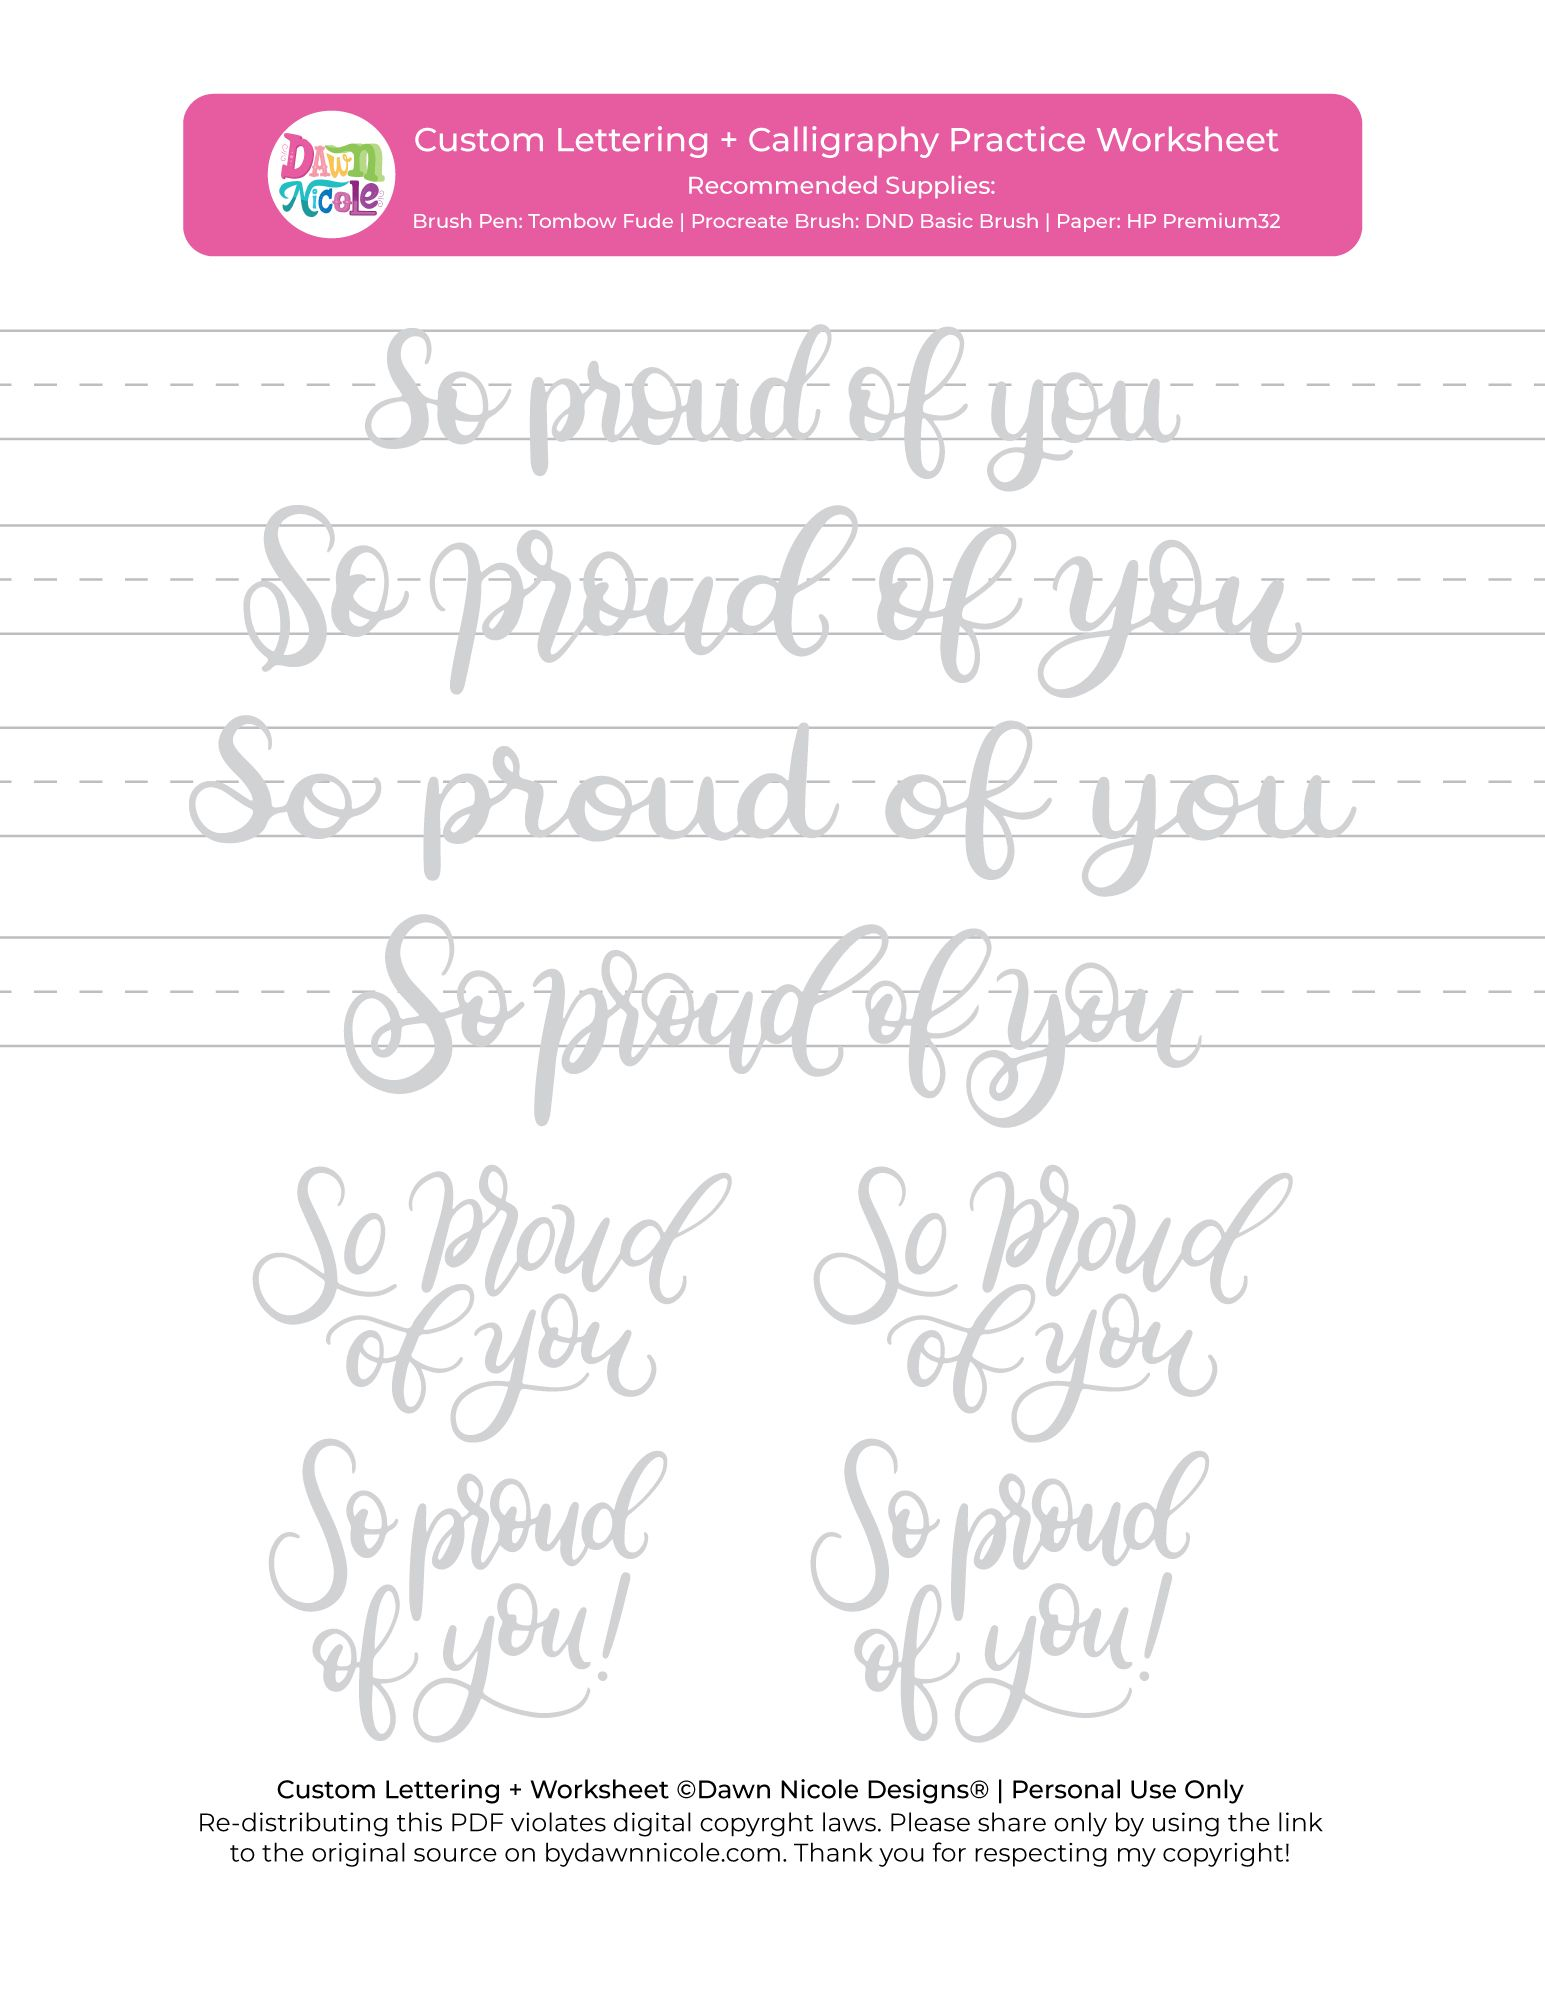 So Proud Of You Brush Calligraphy Practice Sheets In